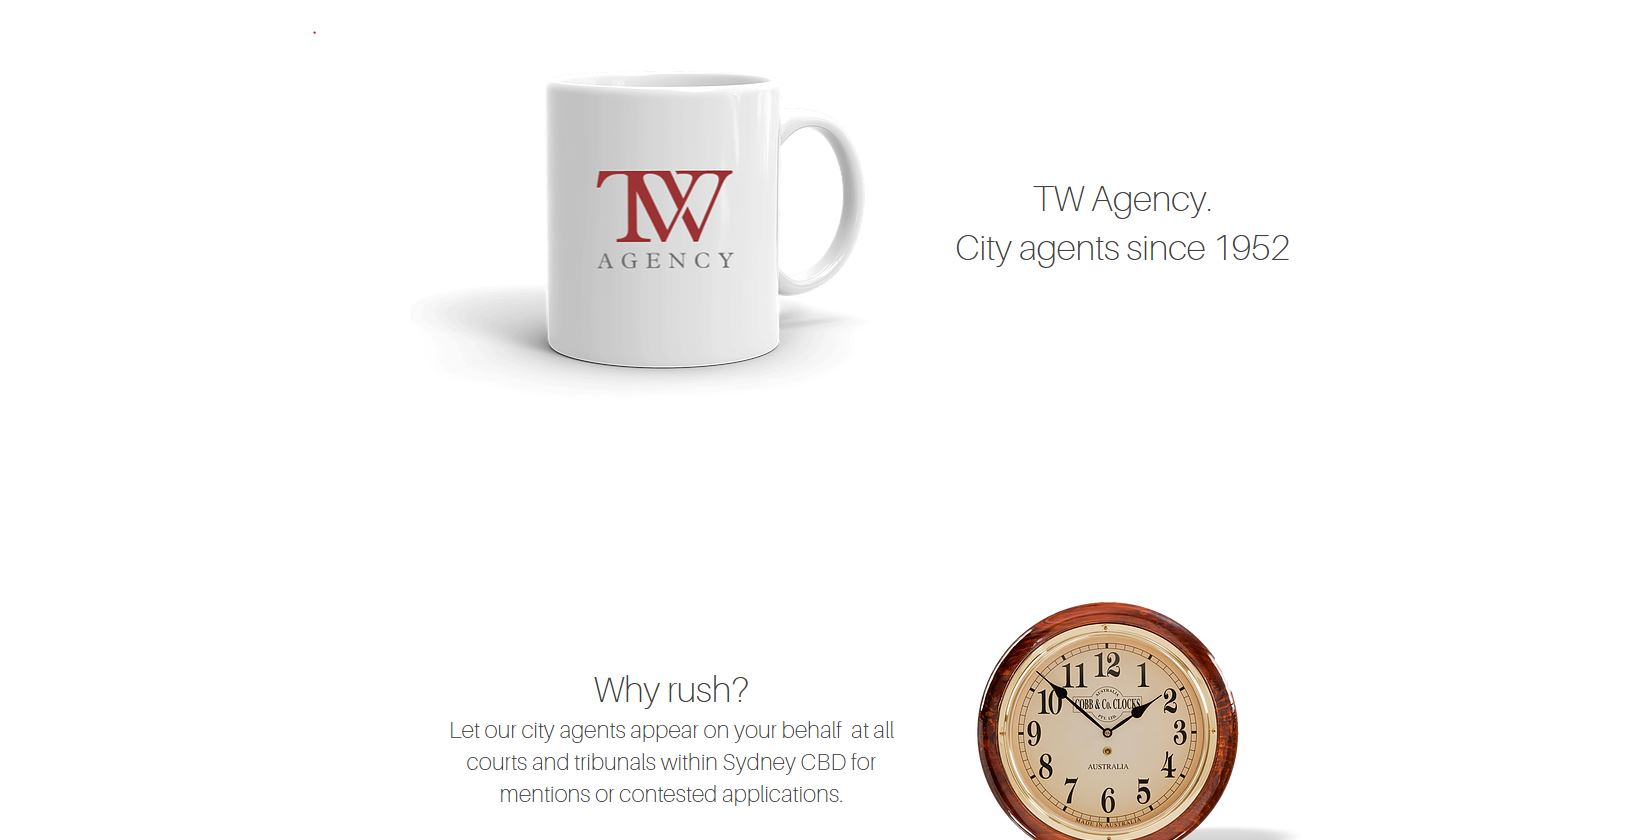 TW Agency Lawyers